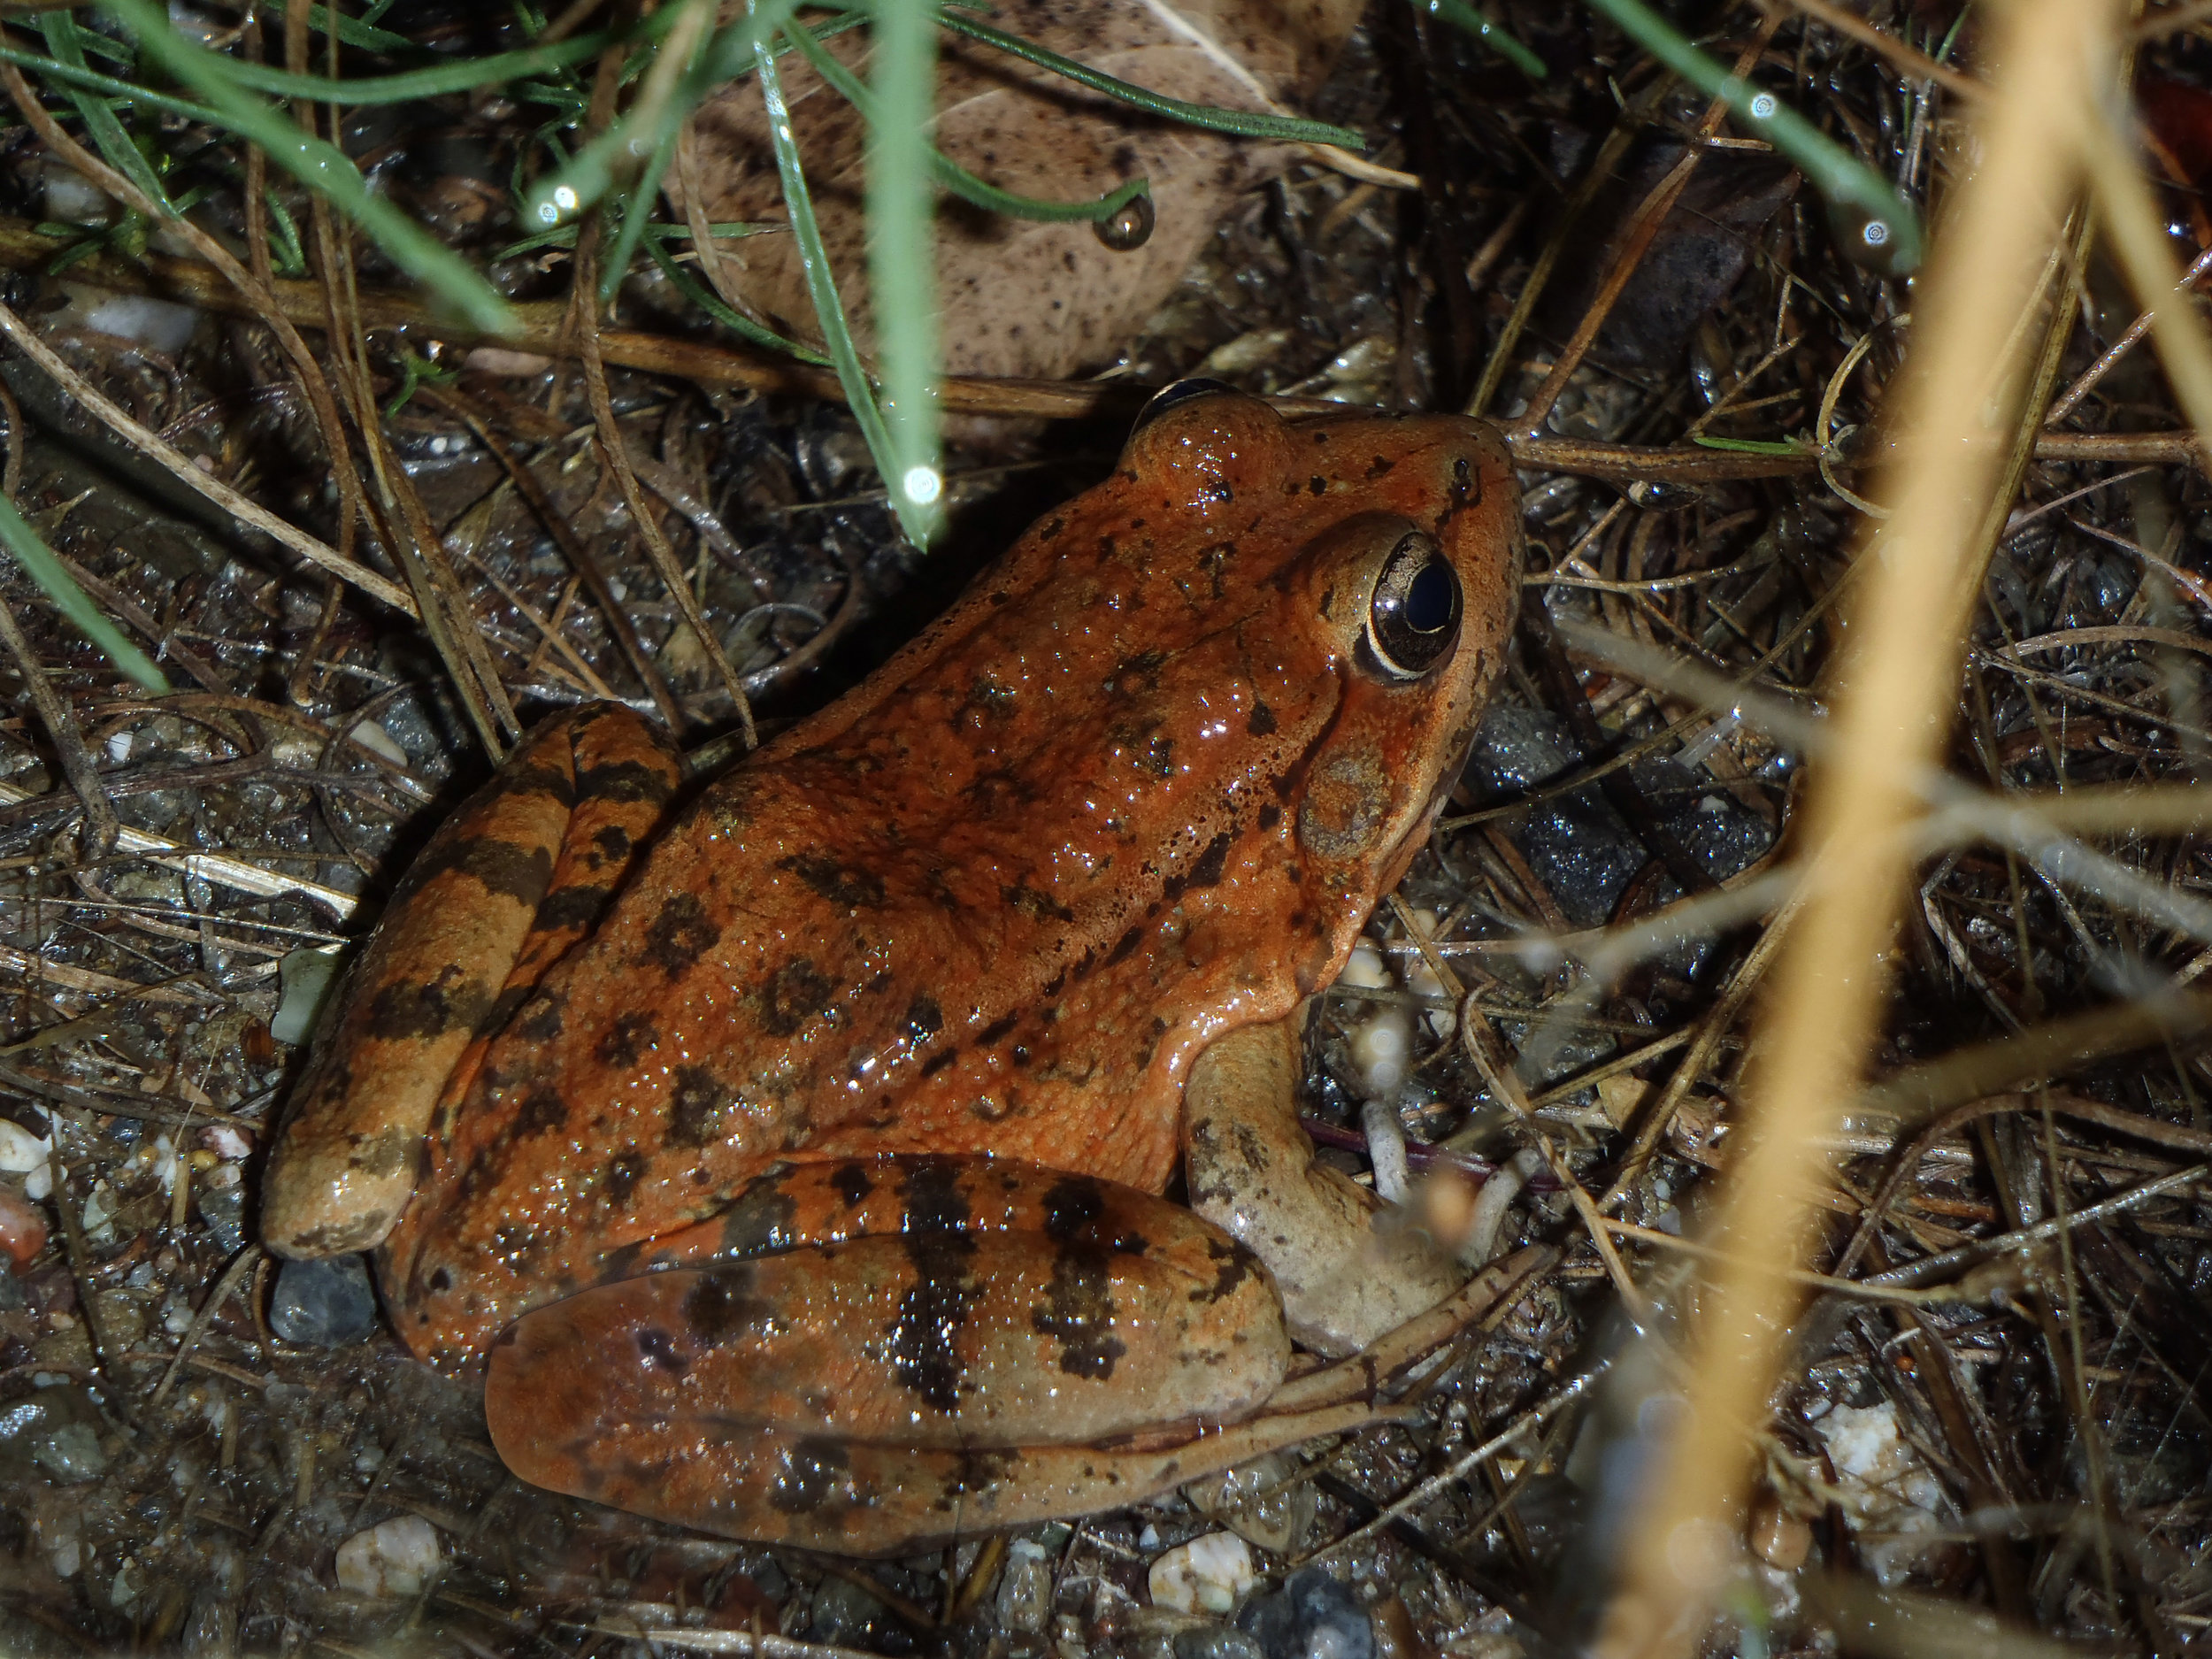 The California Red Legged Frog, a threatened species, has lived in Las Trampas Creek and its riparian zone. Las Trampas Creek flows through Leigh Creekside Park. (Photo by Jim 'Doc' Hale)